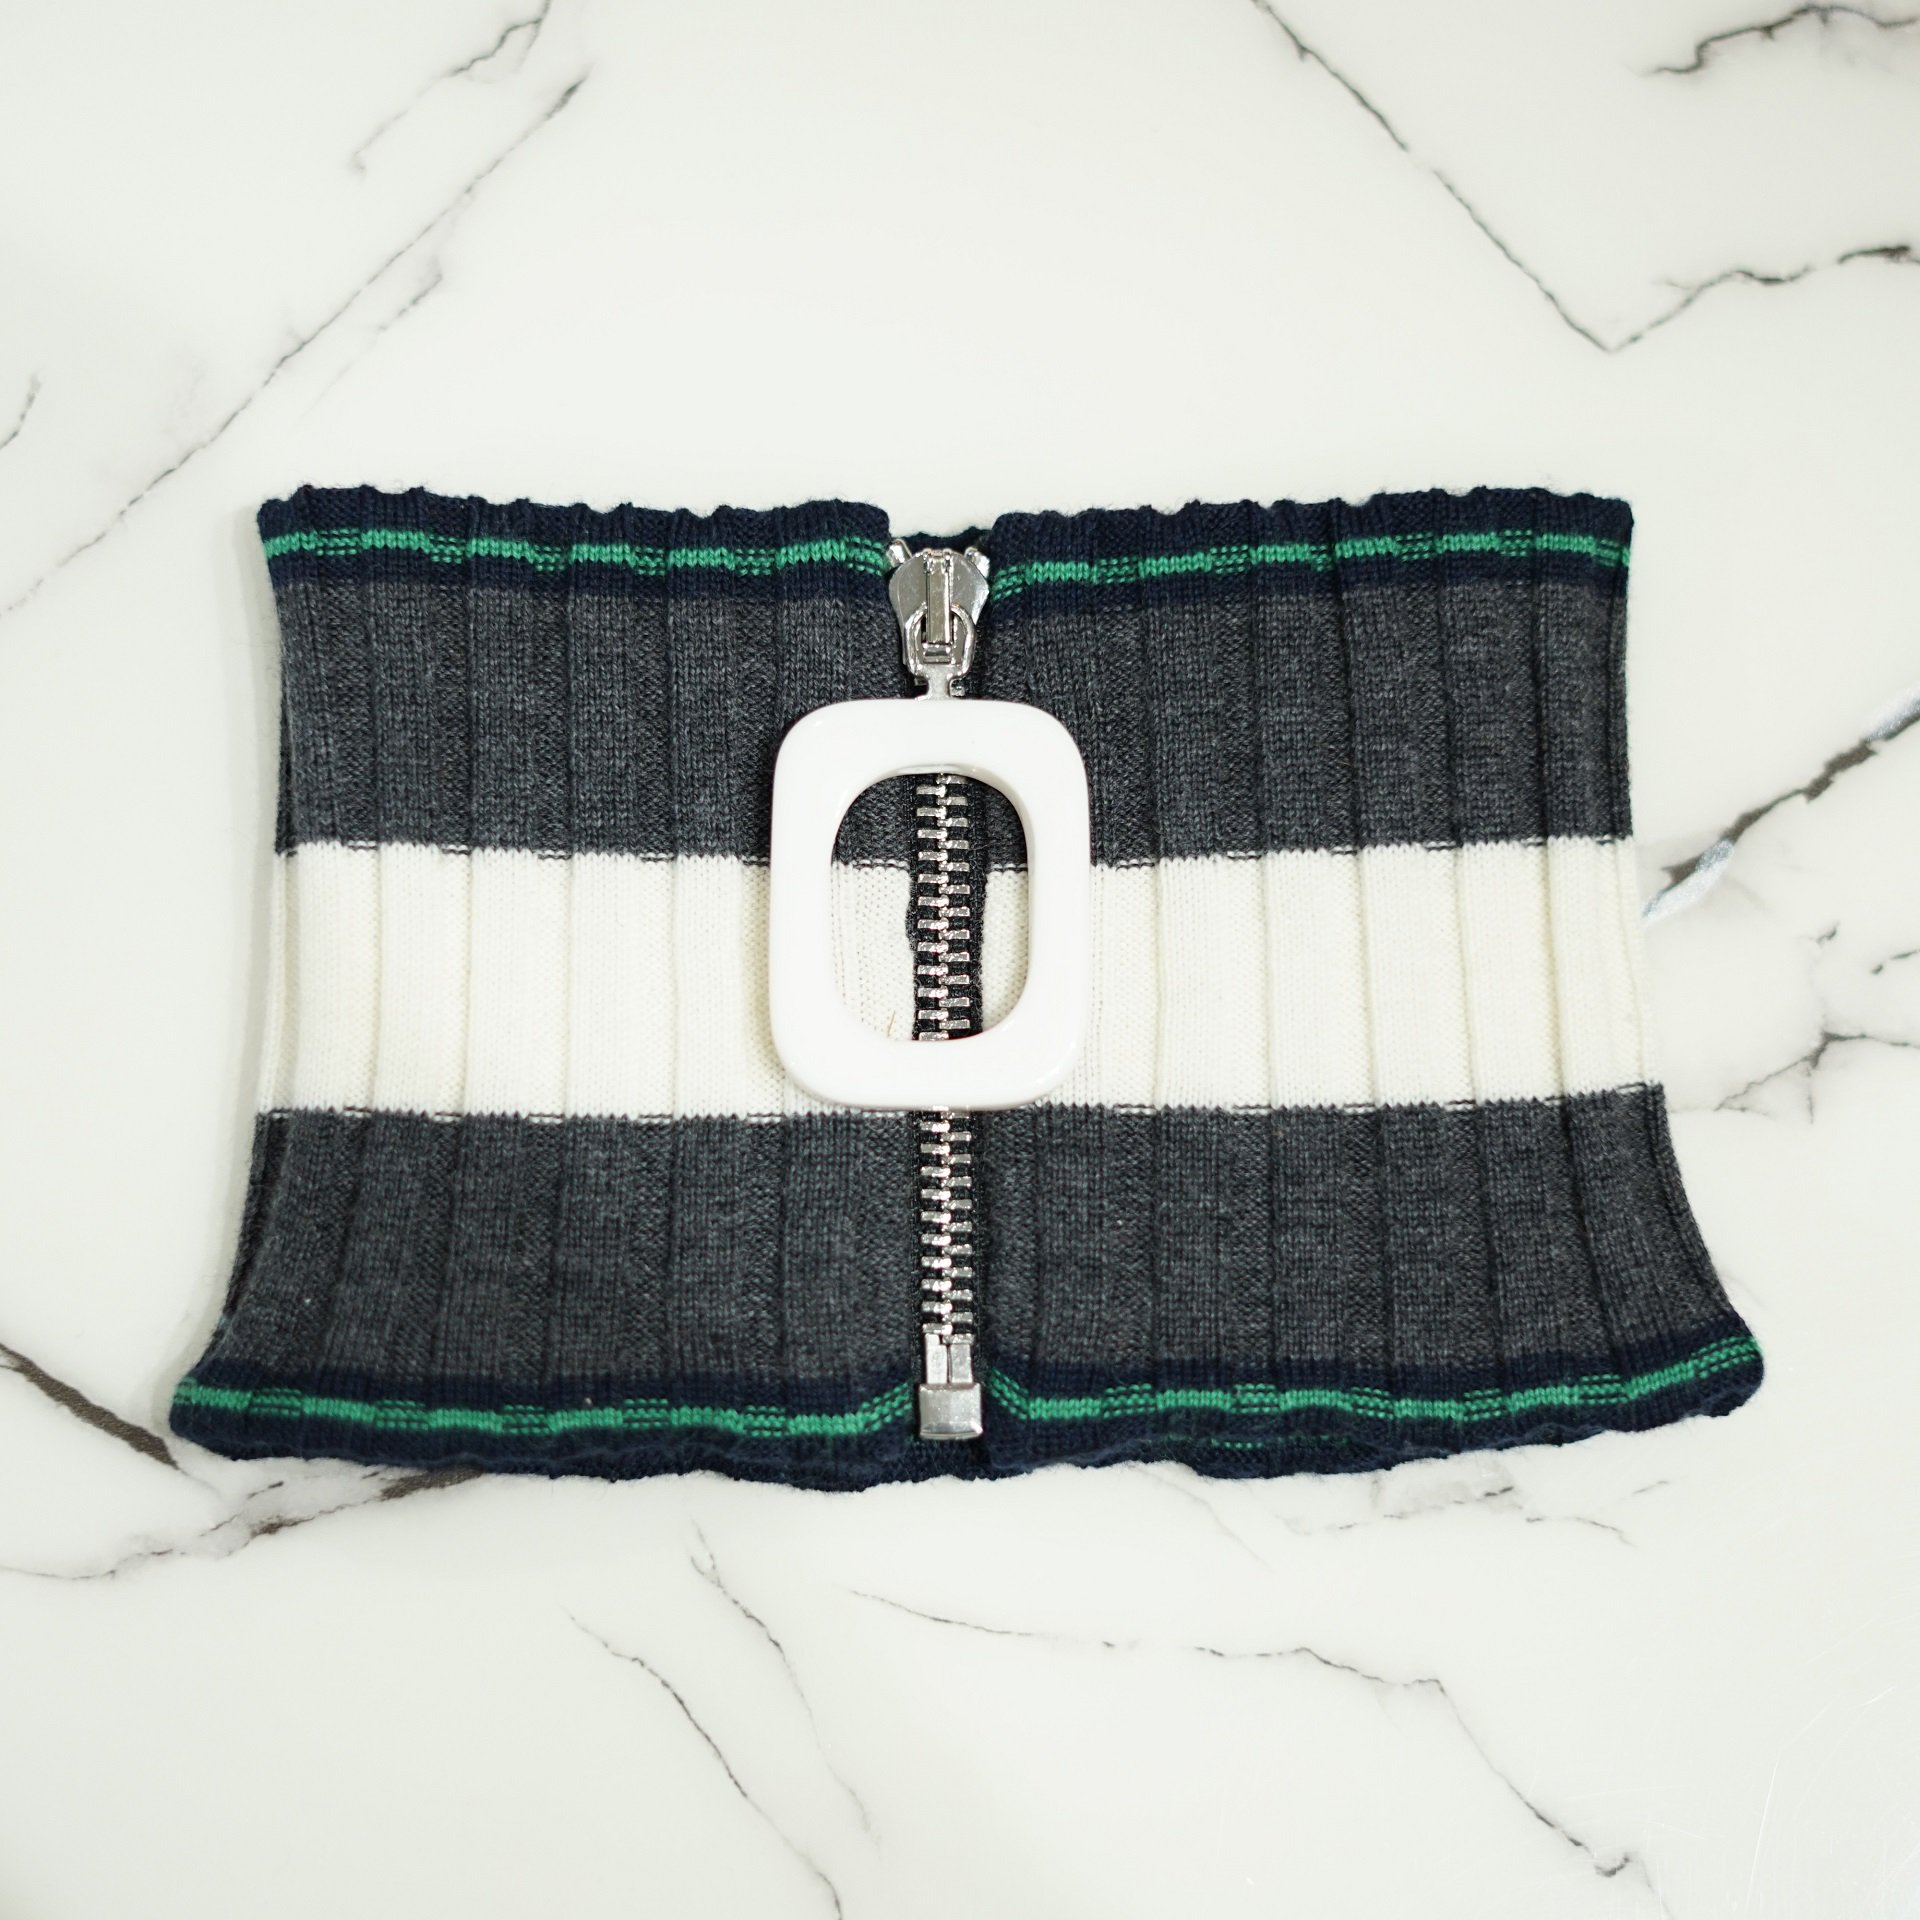 JW ANDERSON-JWA TURTLE NECK RIB BAND BORDER